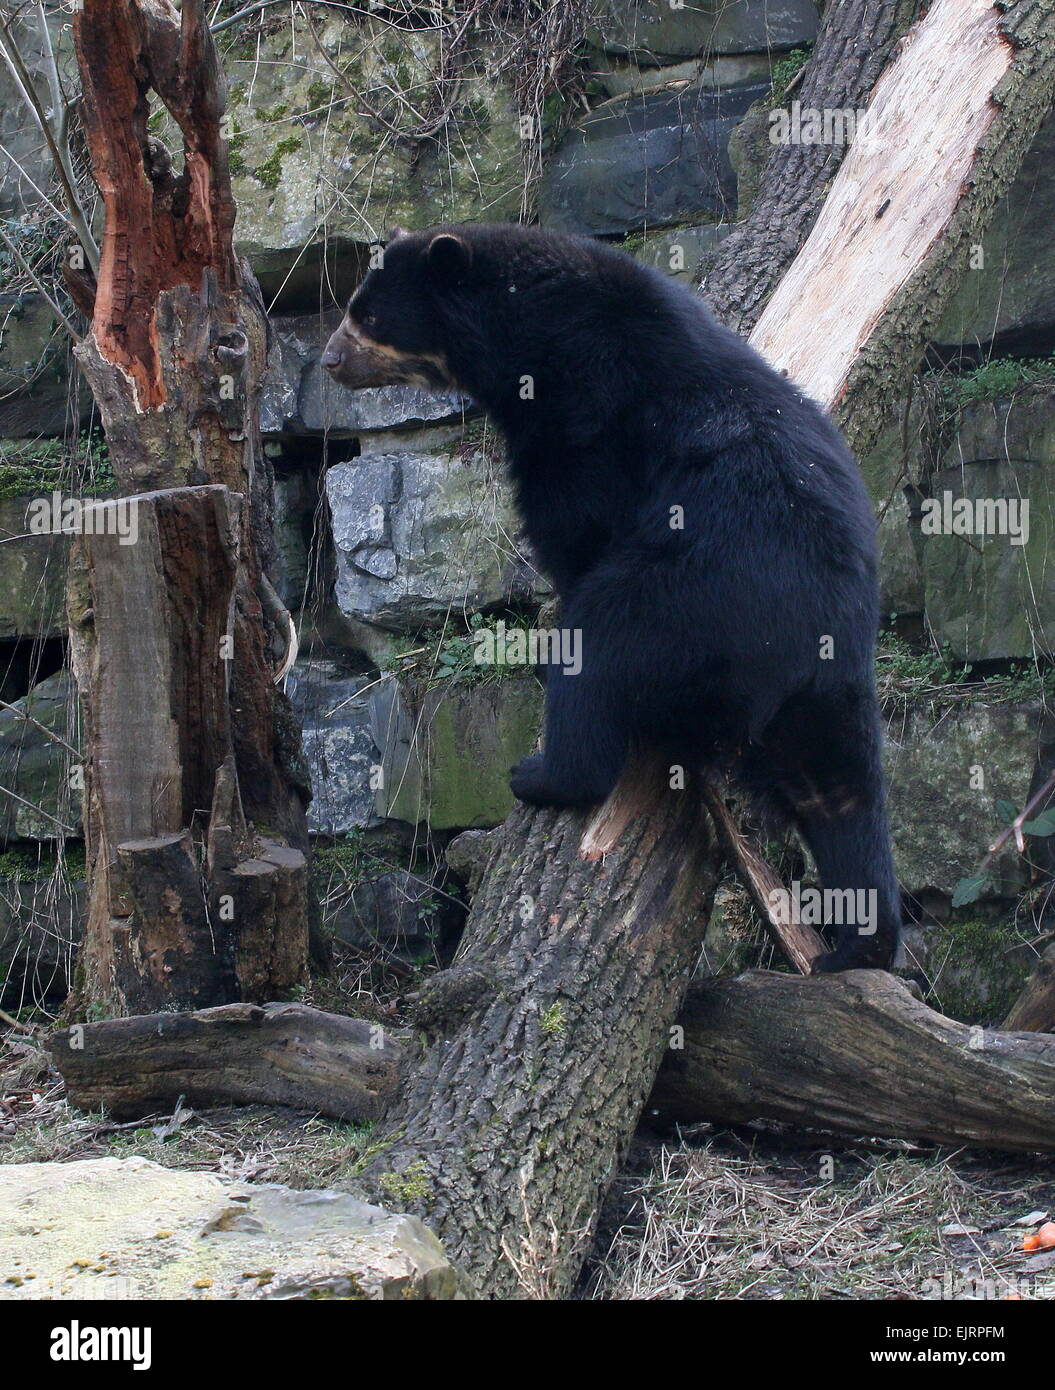 Spectacled or  Andean bear (Tremarctos ornatus) close-up, climbing up a tree stump Stock Photo